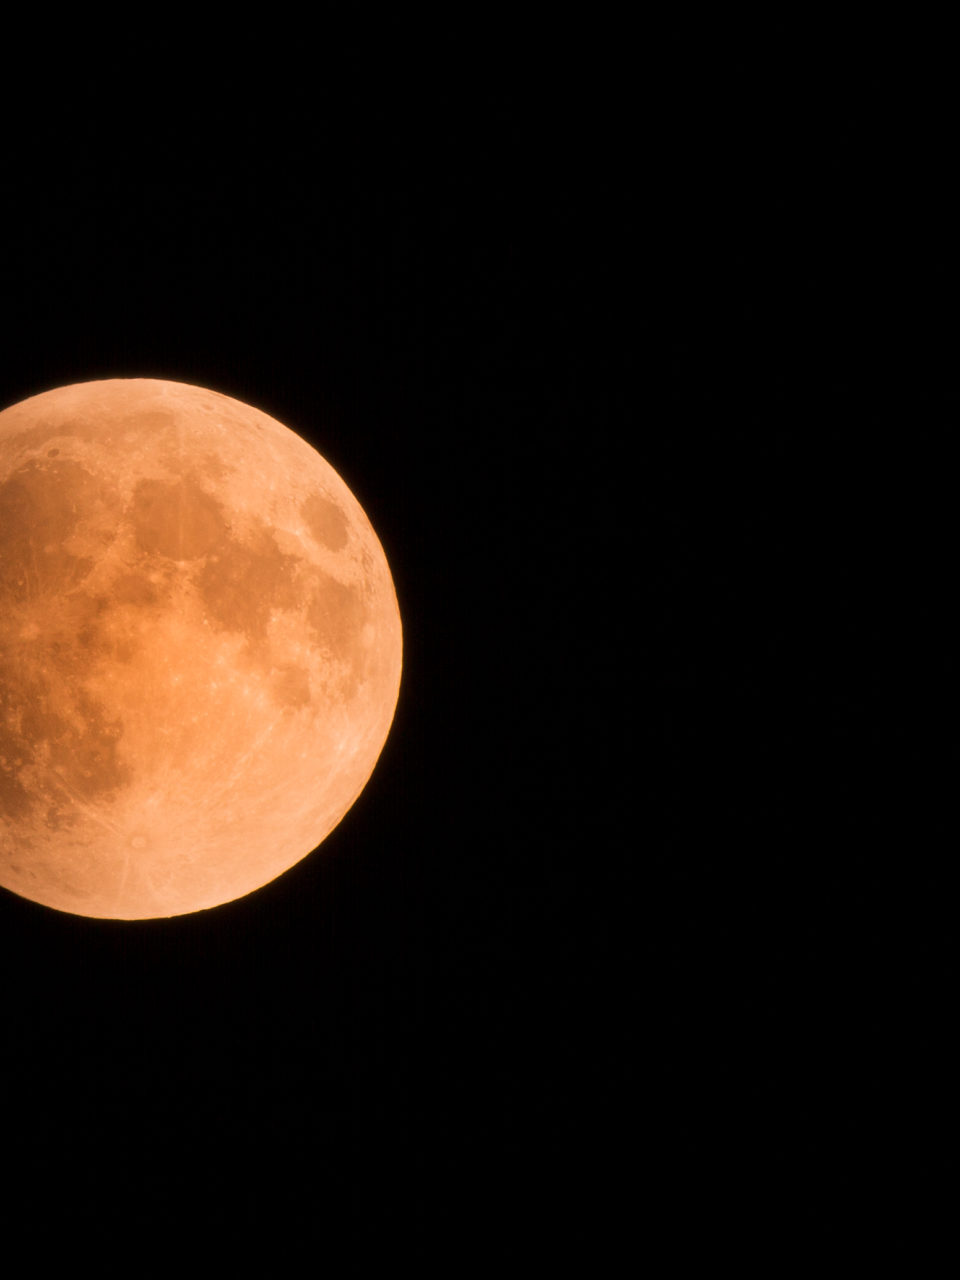 https://www.planetavenue.com/wp-content/uploads/2019/01/blood-moon-PCVLNR2-960x1280.jpg